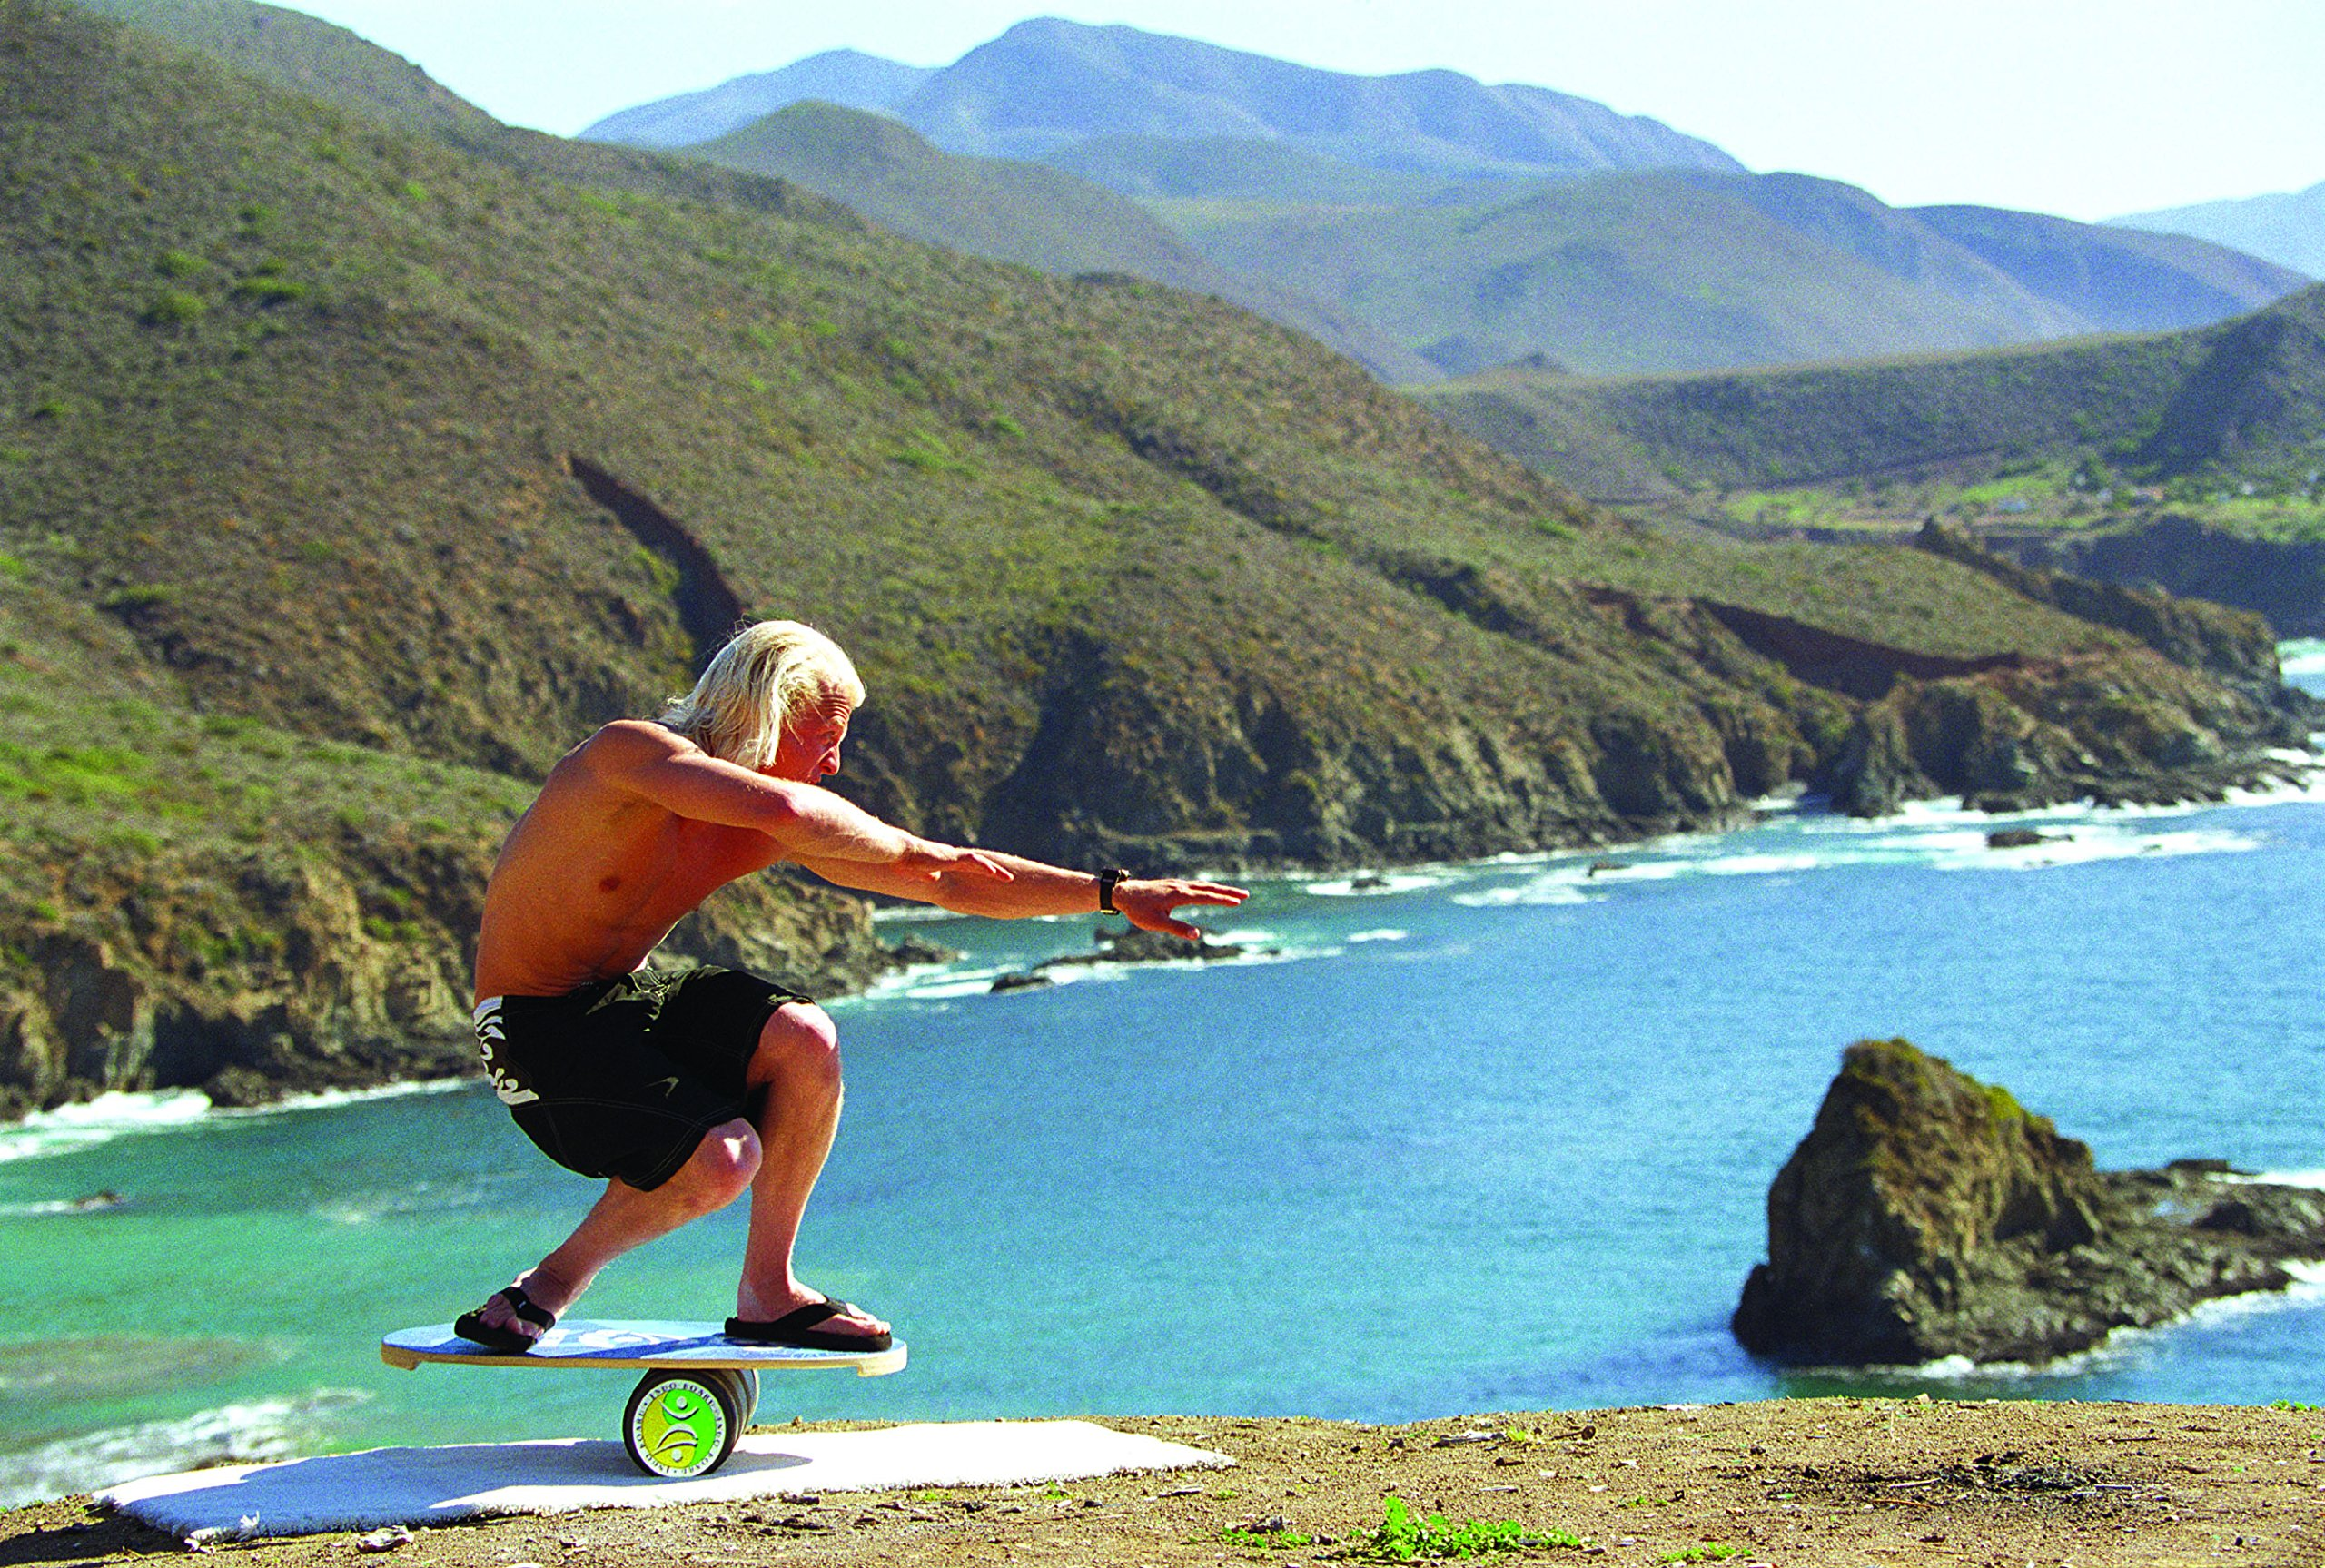 "INDO BOARD Original Balance Board with 6.5"" Roller and 30"" X 18"" Non-Slip Deck – Natural Wood Design by INDO BOARD (Image #7)"